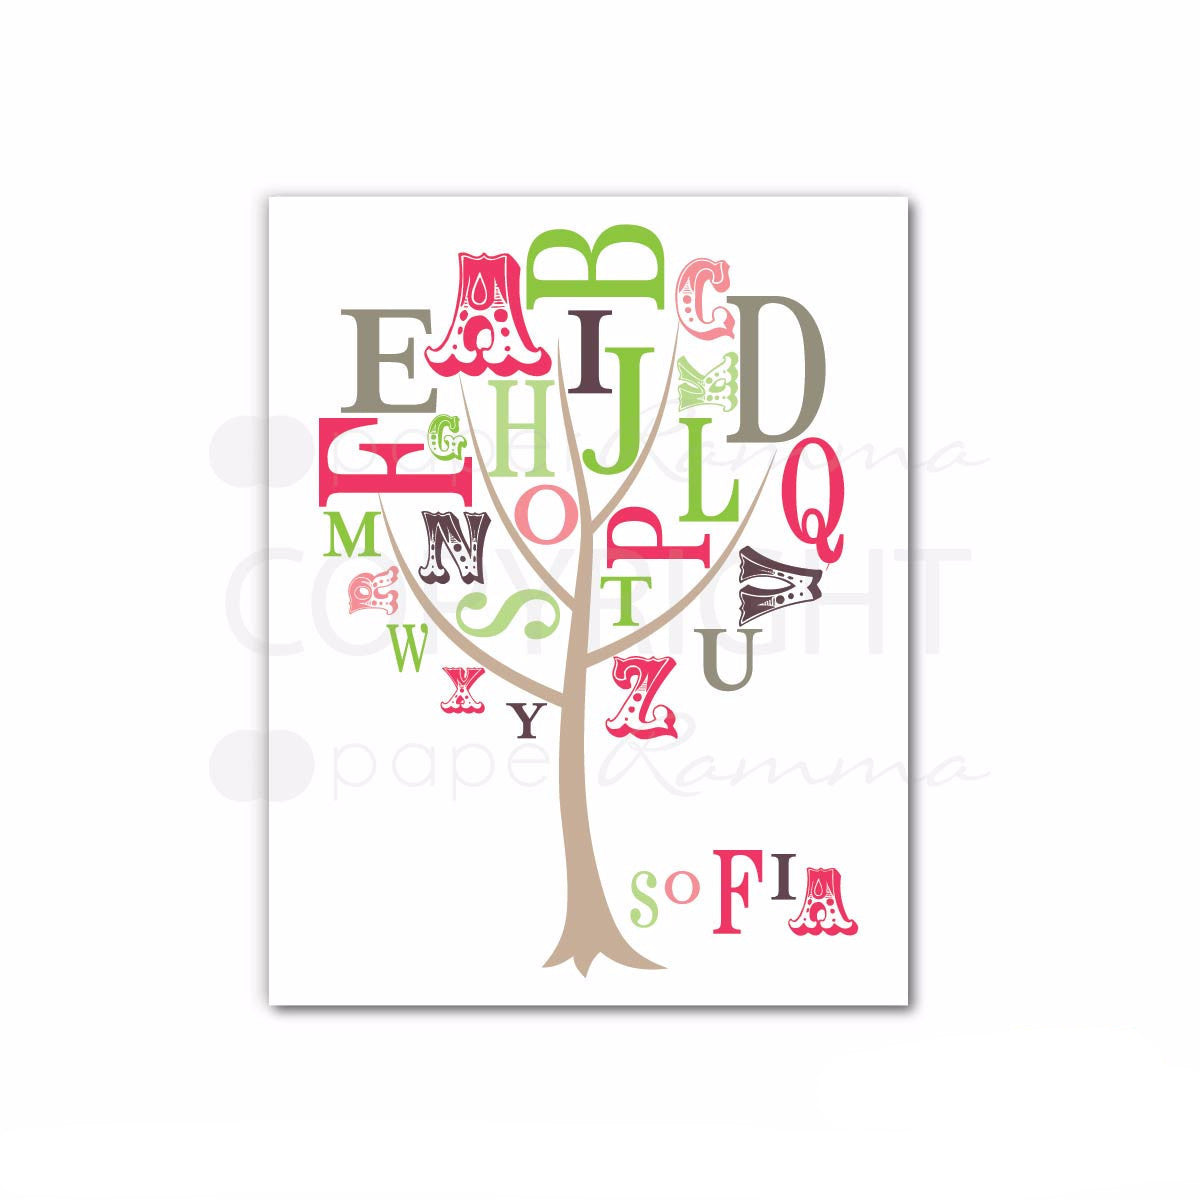 ABC Tree Print featuring Child's Name</br> <small> <i> Nursery & Kids Art Print</i> </br> <small> Available in 5x7 - 20x30